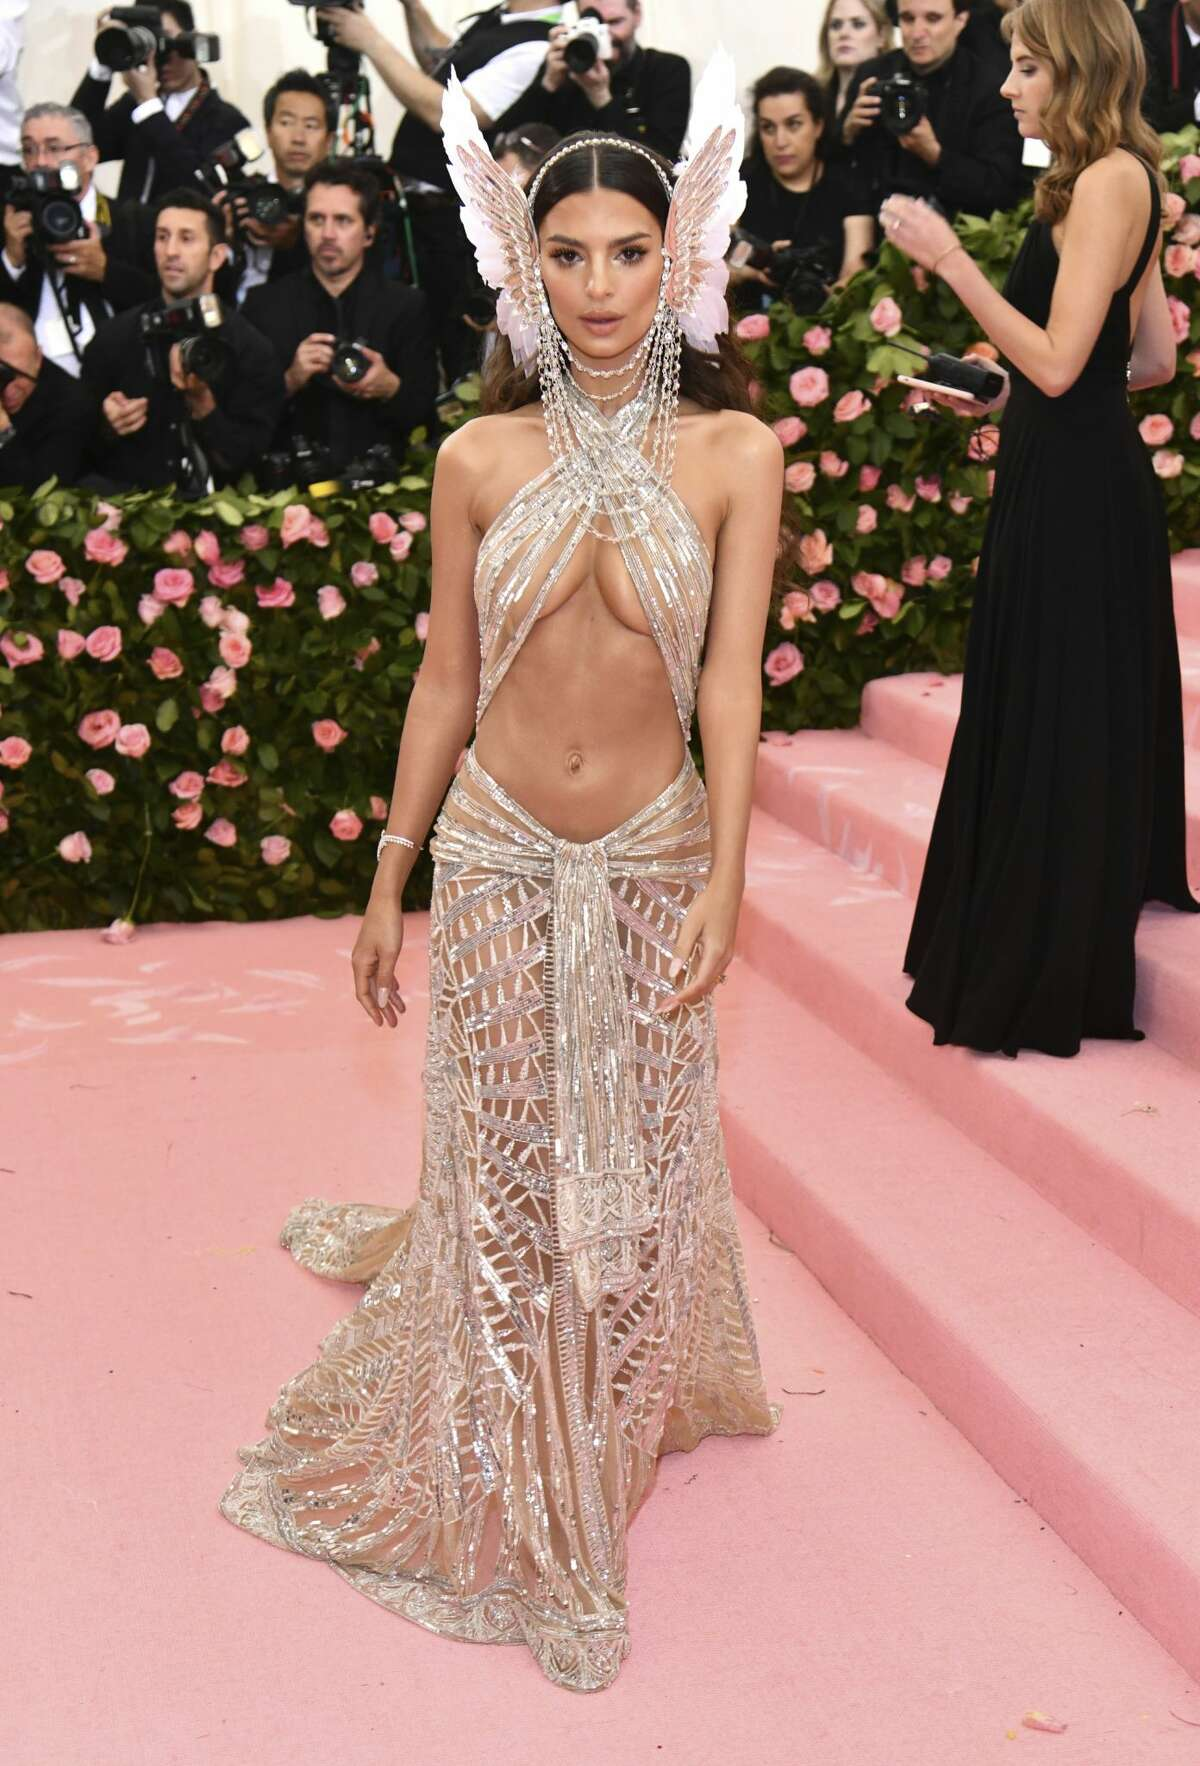 """Emily Ratajkowski attends The Metropolitan Museum of Art's Costume Institute benefit gala celebrating the opening of the """"Camp: Notes on Fashion"""" exhibition on Monday, May 6, 2019, in New York. (Photo by Charles Sykes/Invision/AP)"""